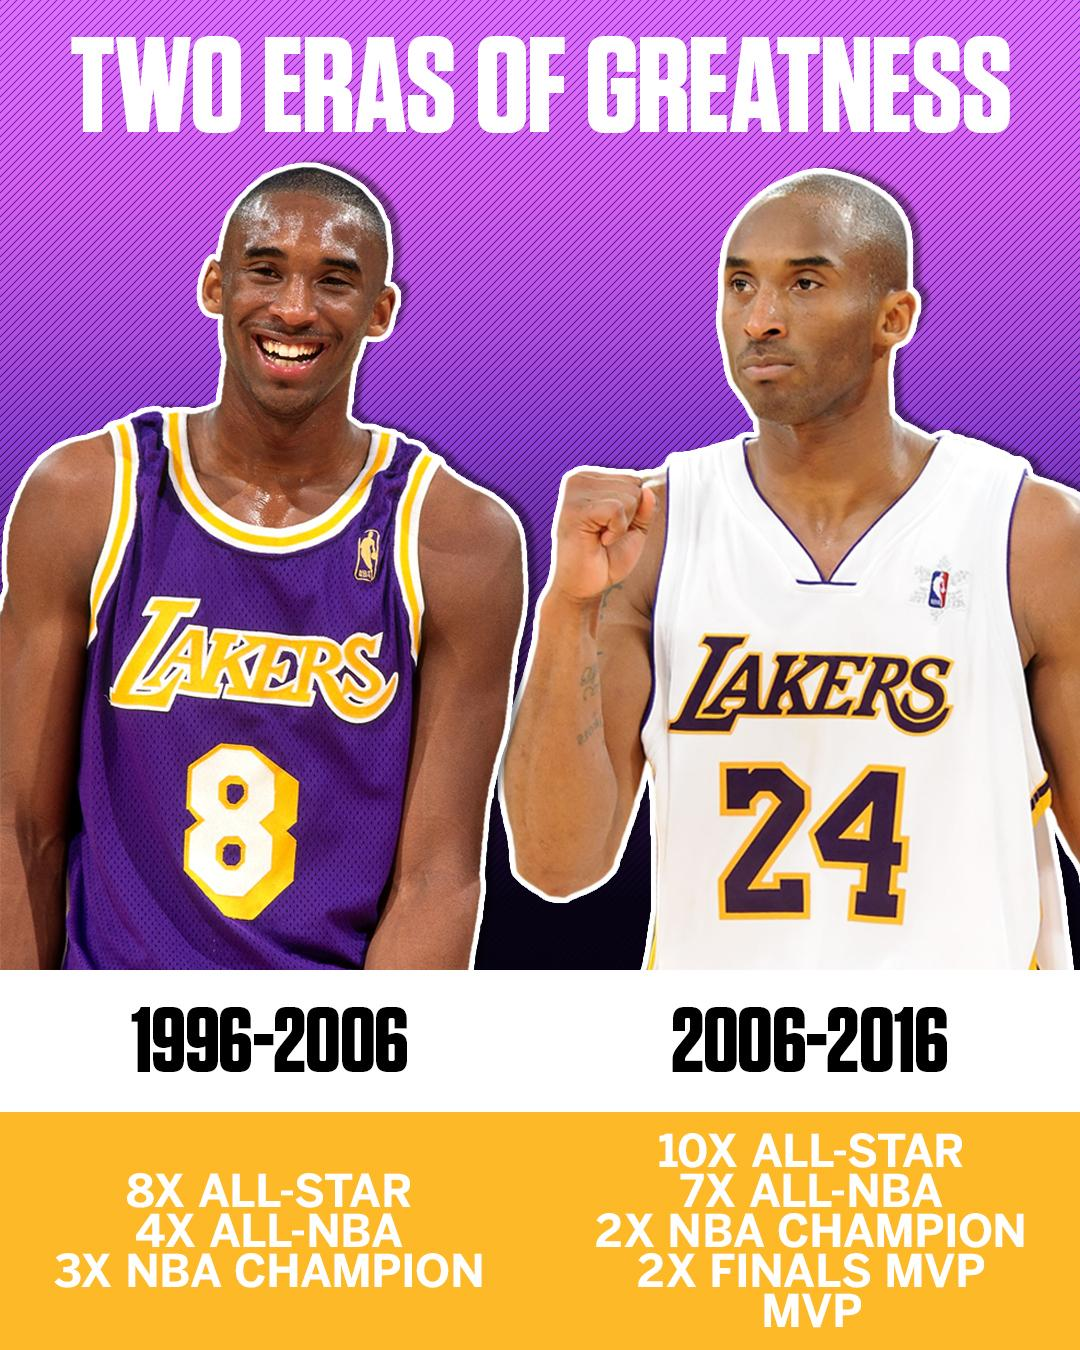 If No. 8 Kobe and No. 24 Kobe had separate careers, could they both make the Hall of Fame? https://t.co/OVVoepX7xa